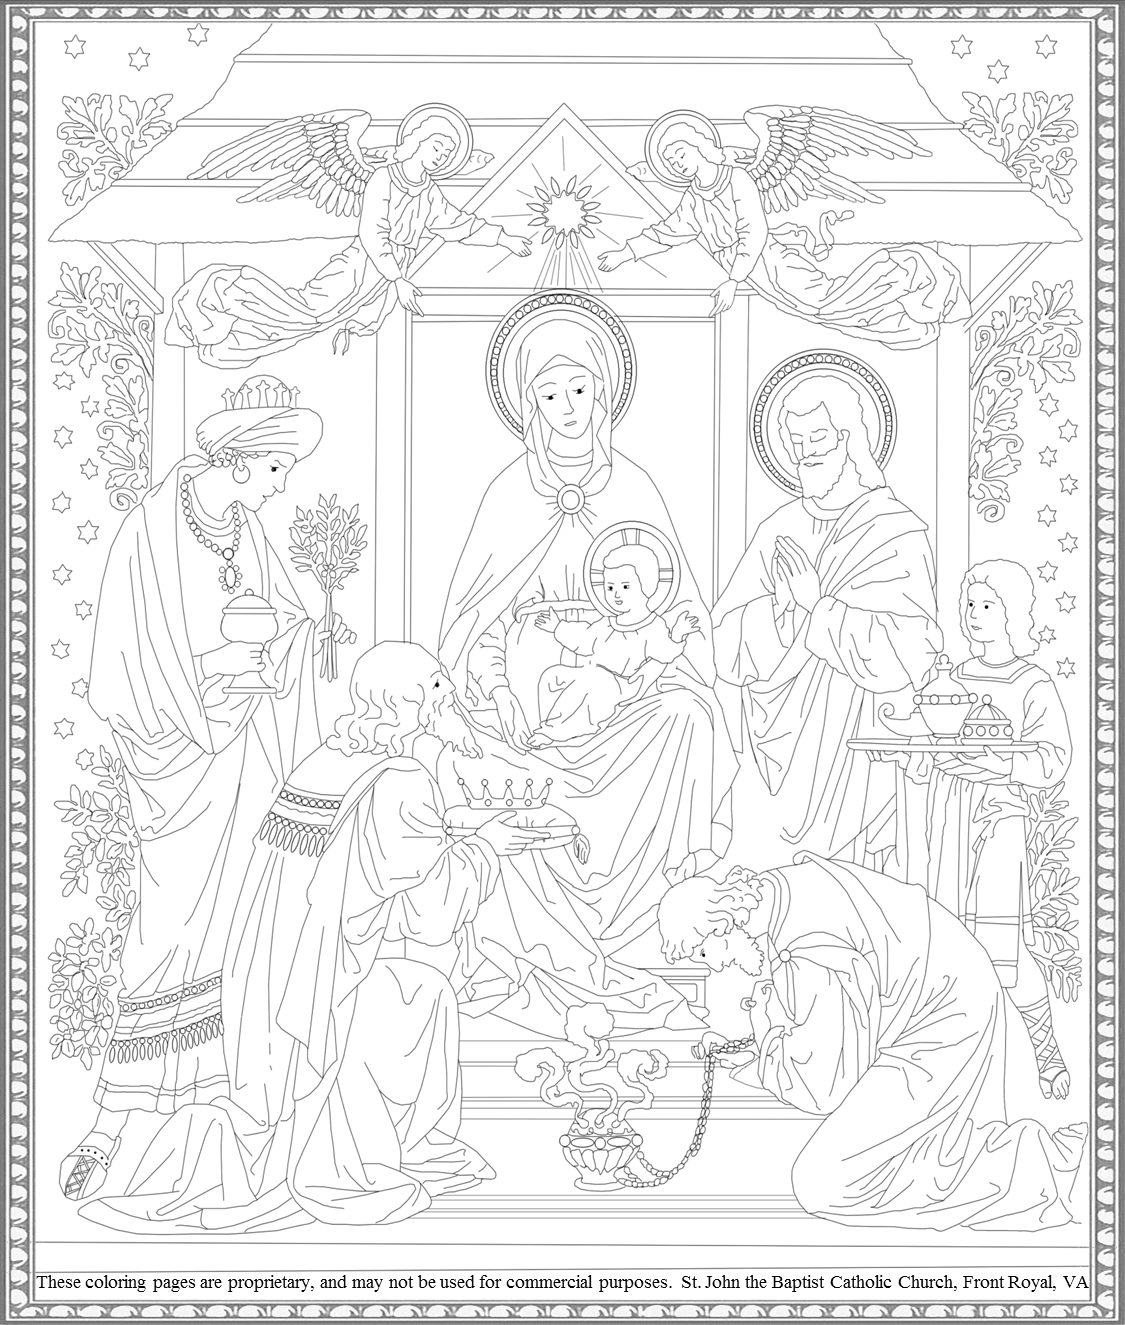 epiphany coloring pages free - photo#24